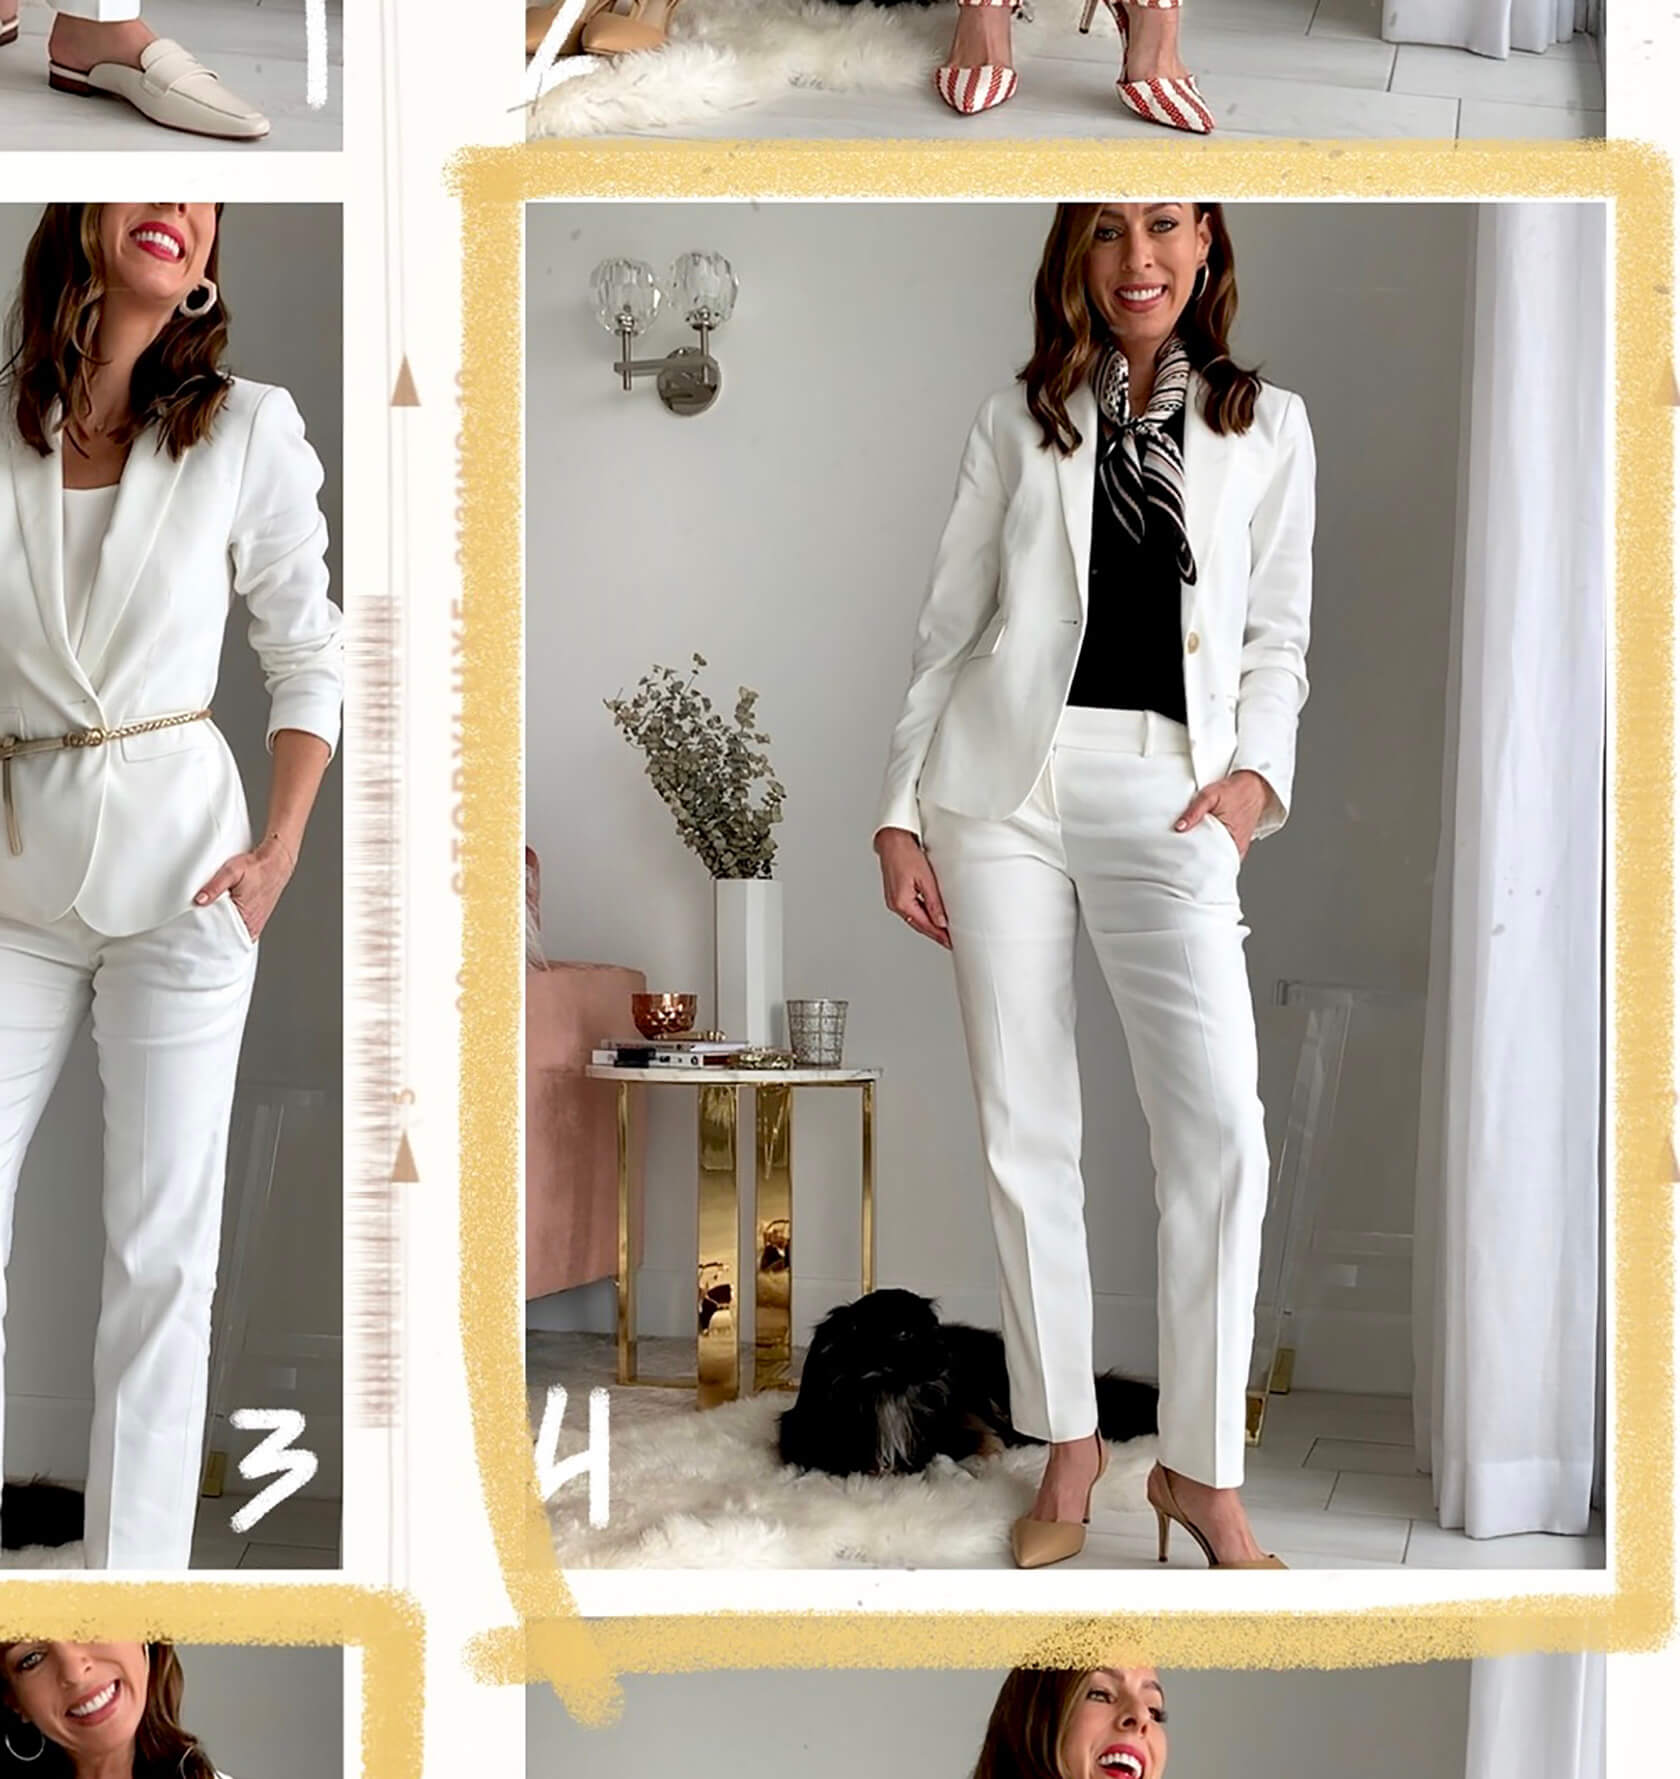 424e39fa69f5 Sydne Style shows how to wear a white suit for office outfit ideas